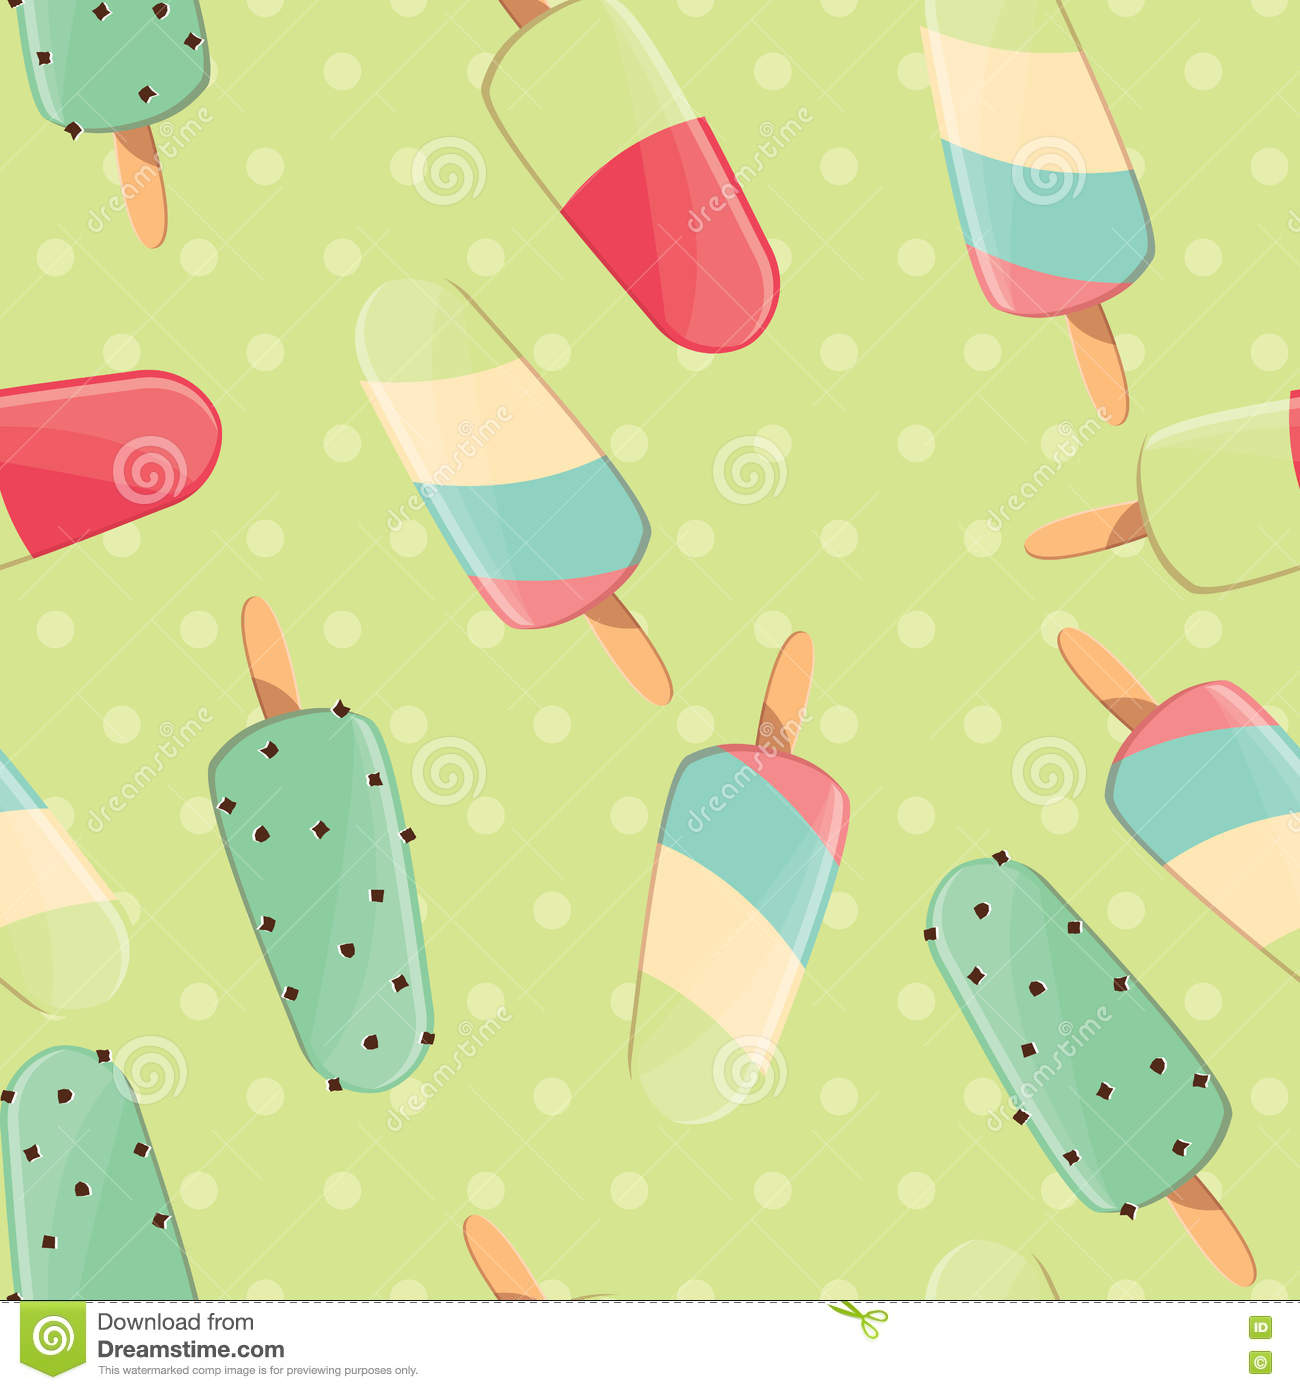 Ice cream seamless pattern, colorful summer background, delicious sweet treats